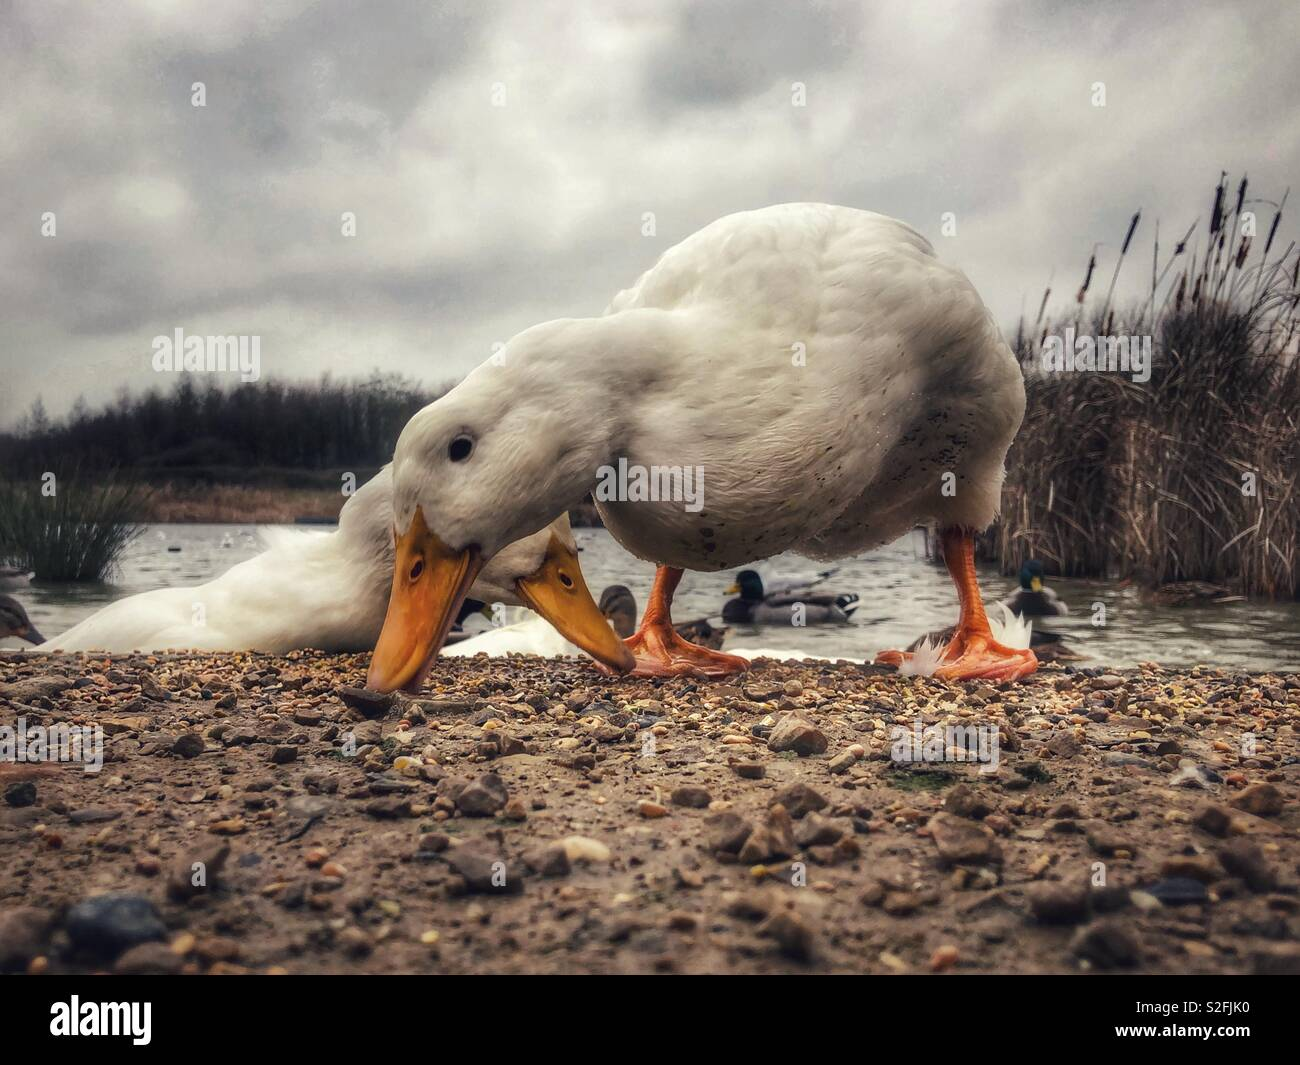 Aylesbury duck foraging for food - Stock Image